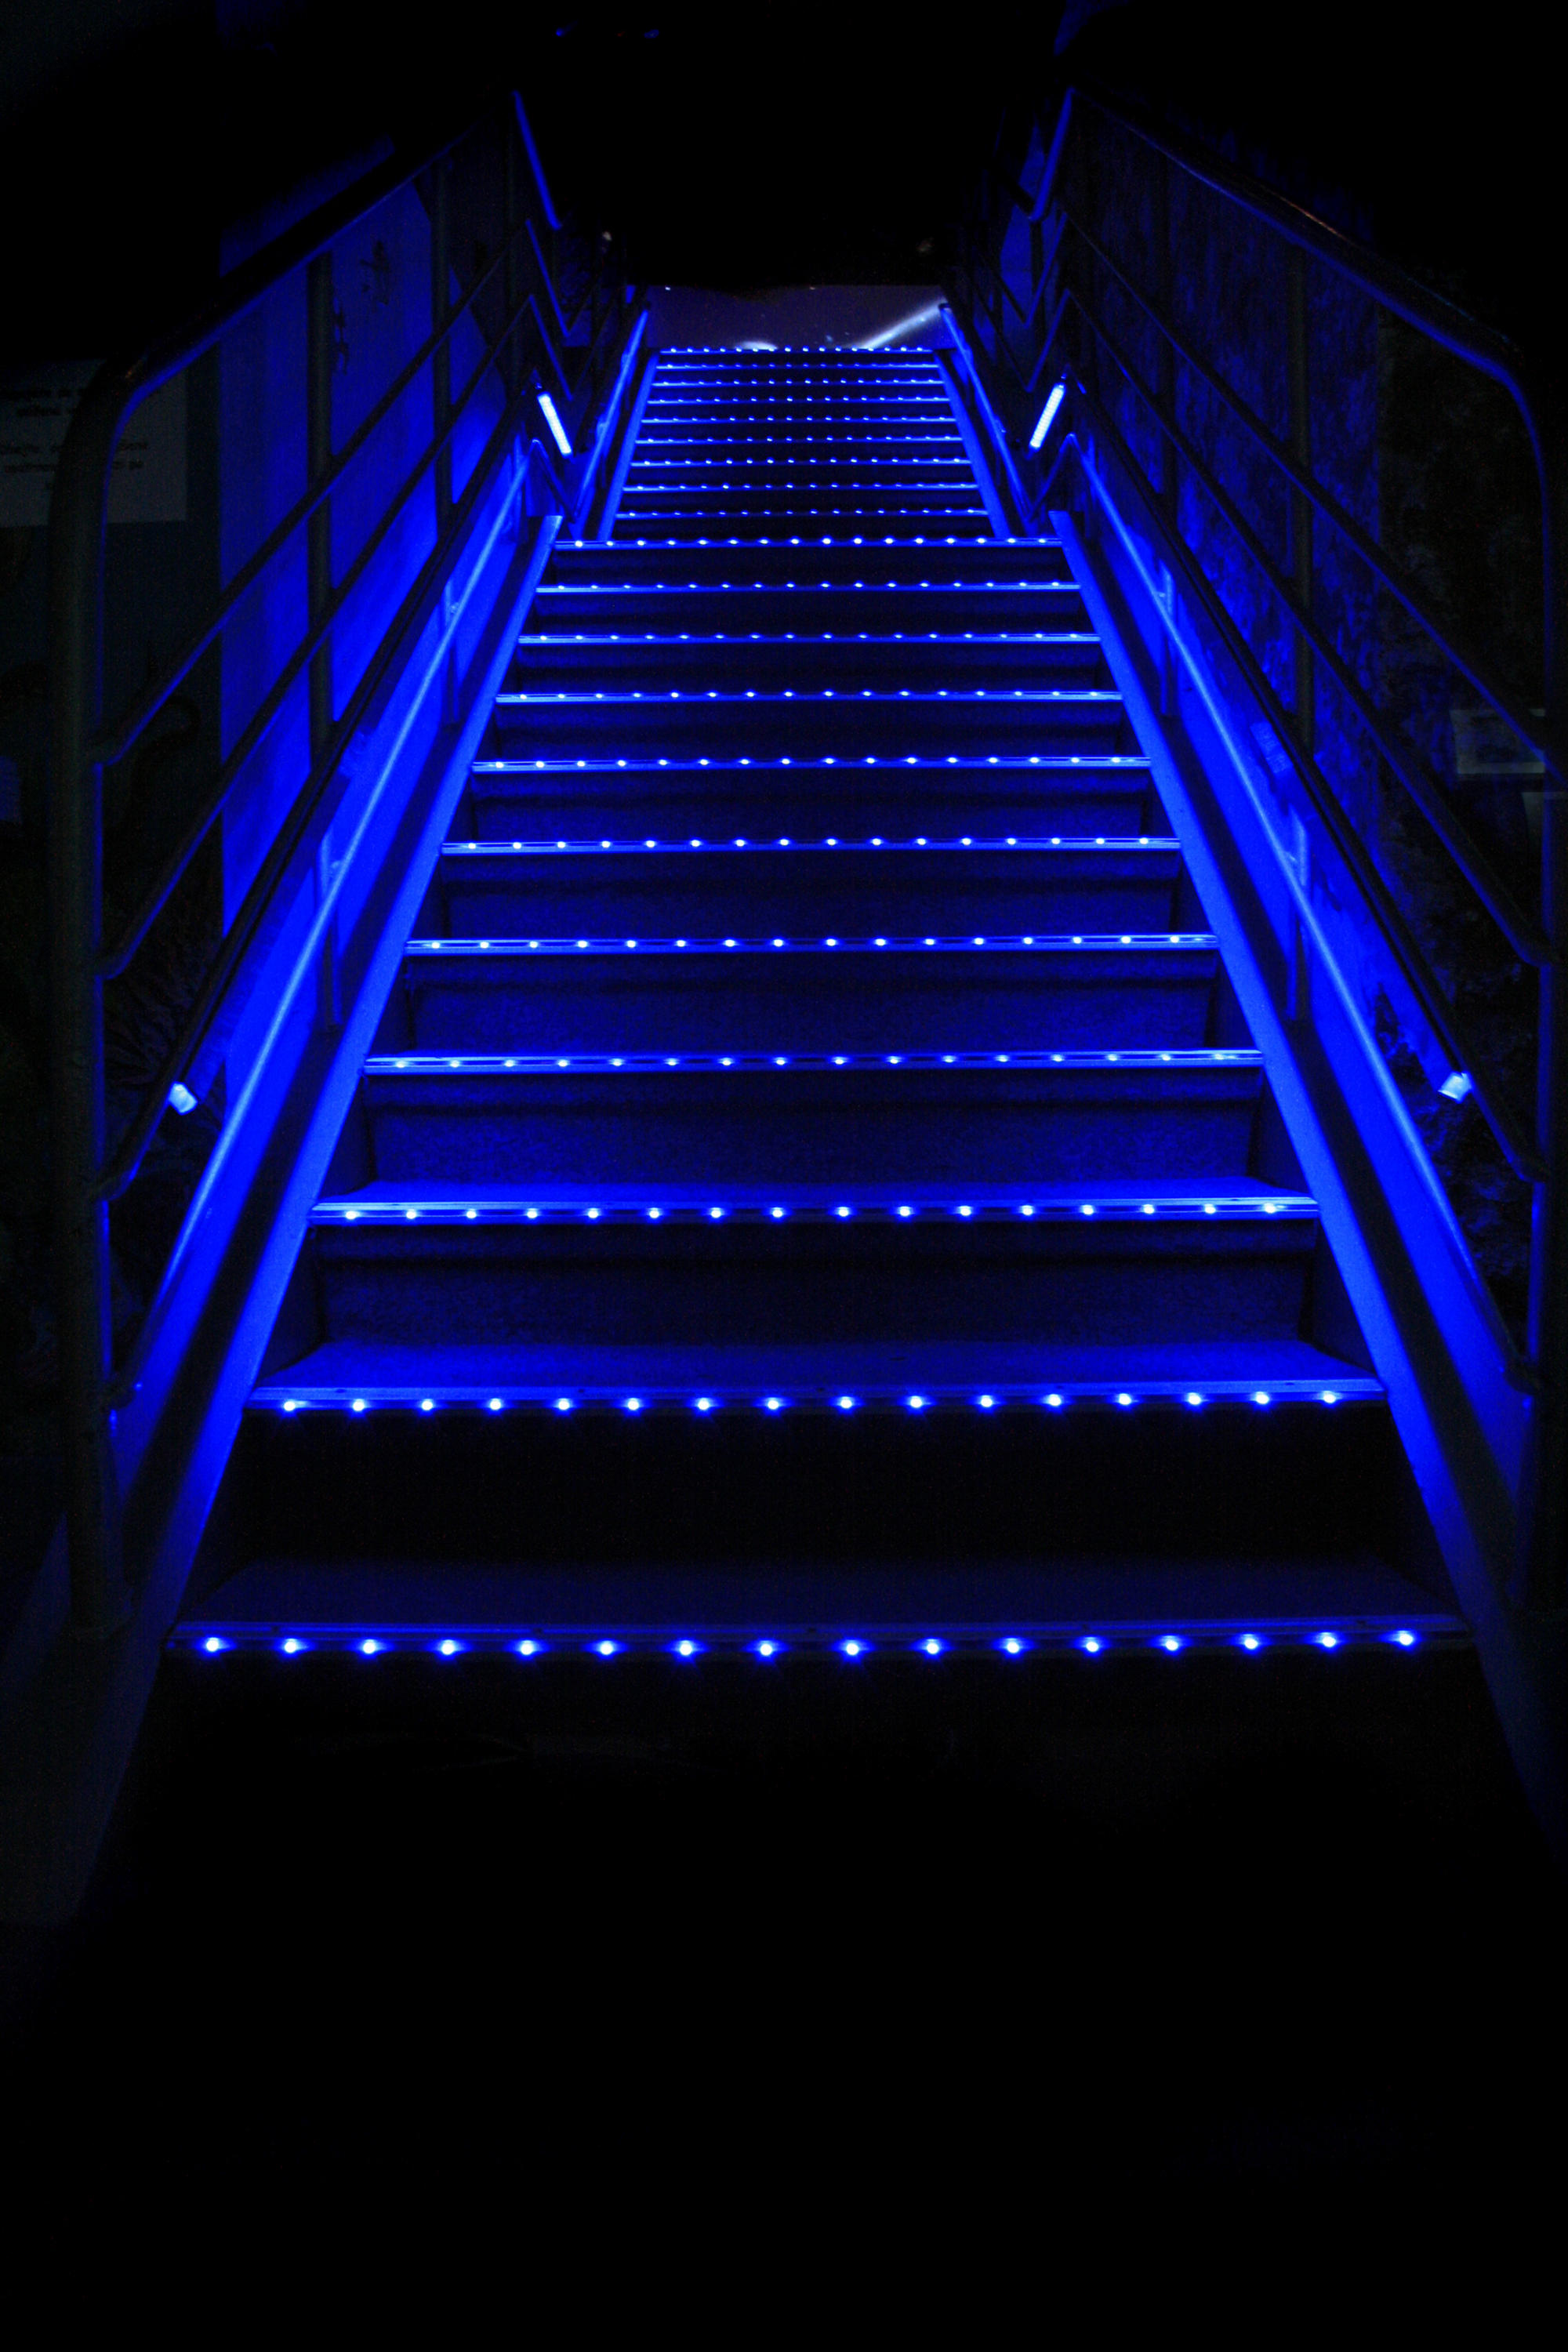 Alu Stair Floor Lights From Ledson Architonic